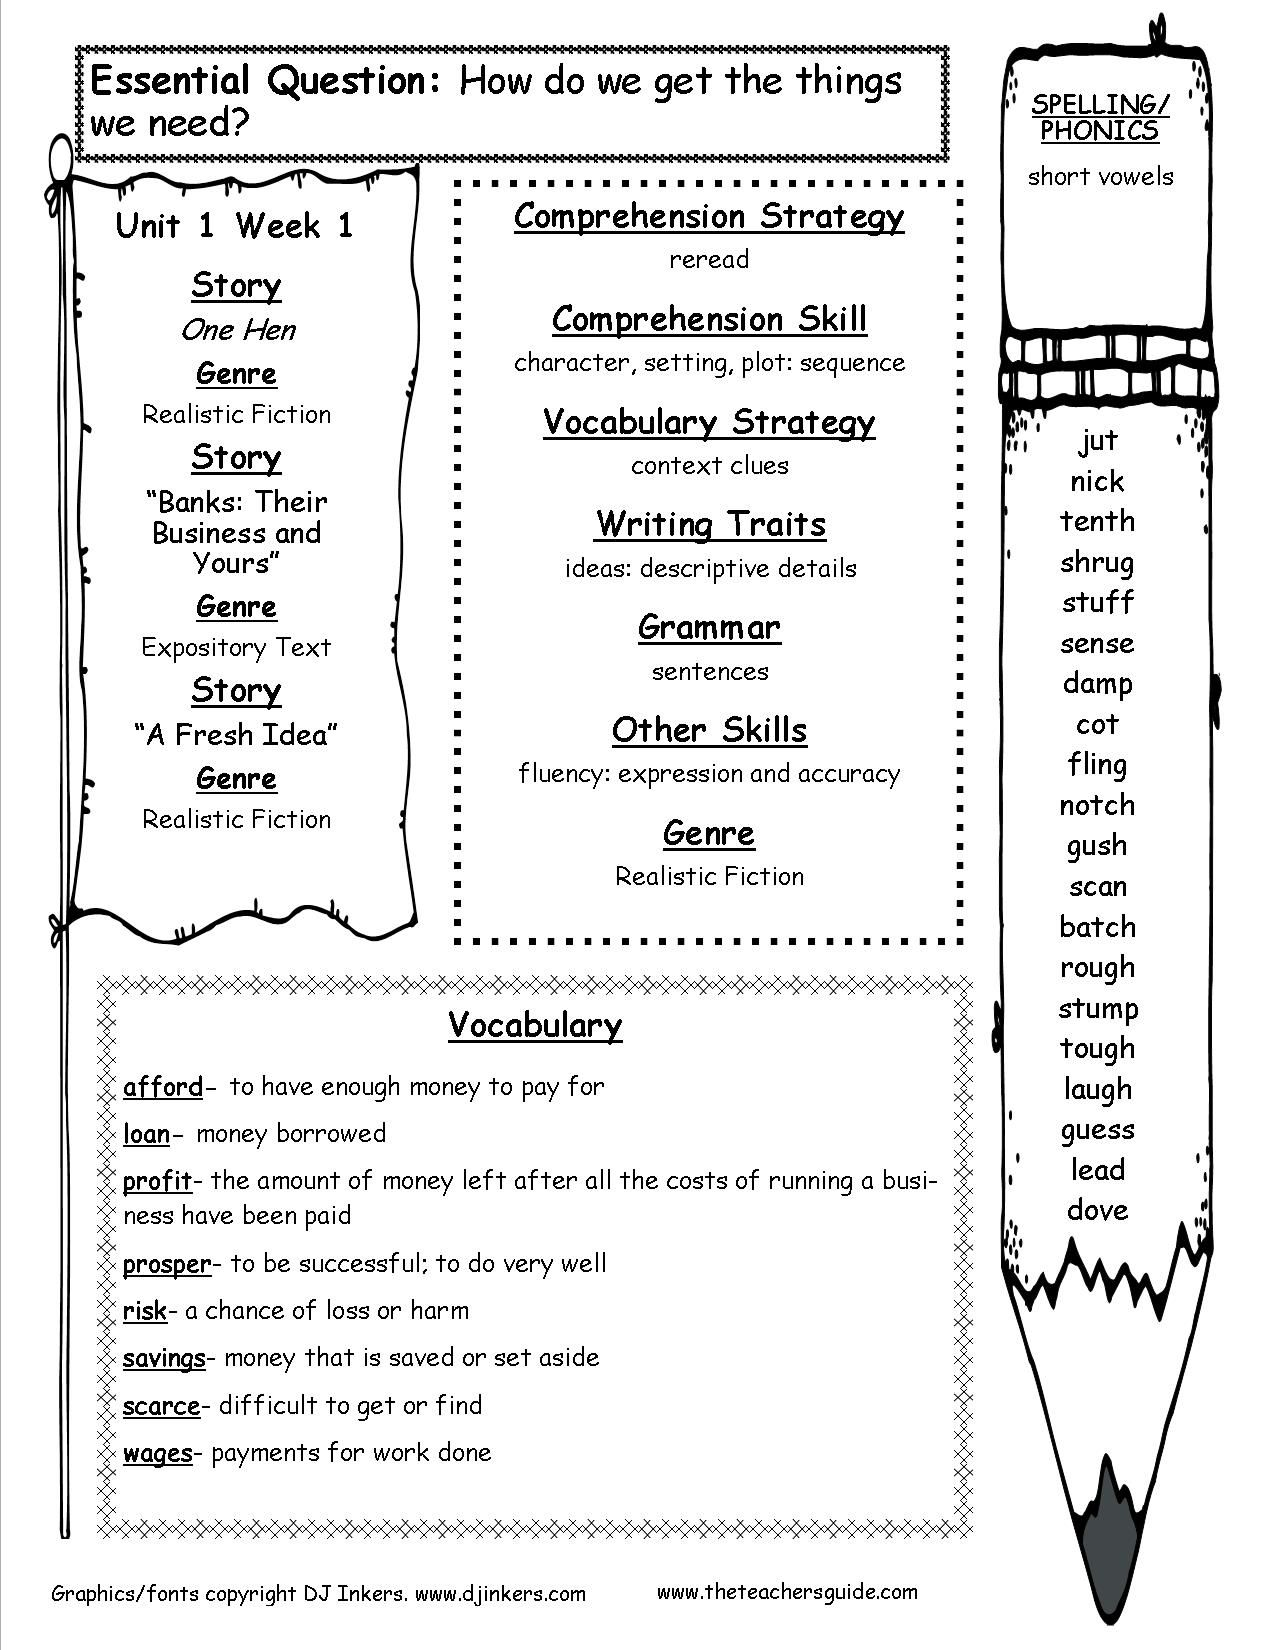 McGraw-Hill Wonders Fifth Grade Resources and Printouts | Reading